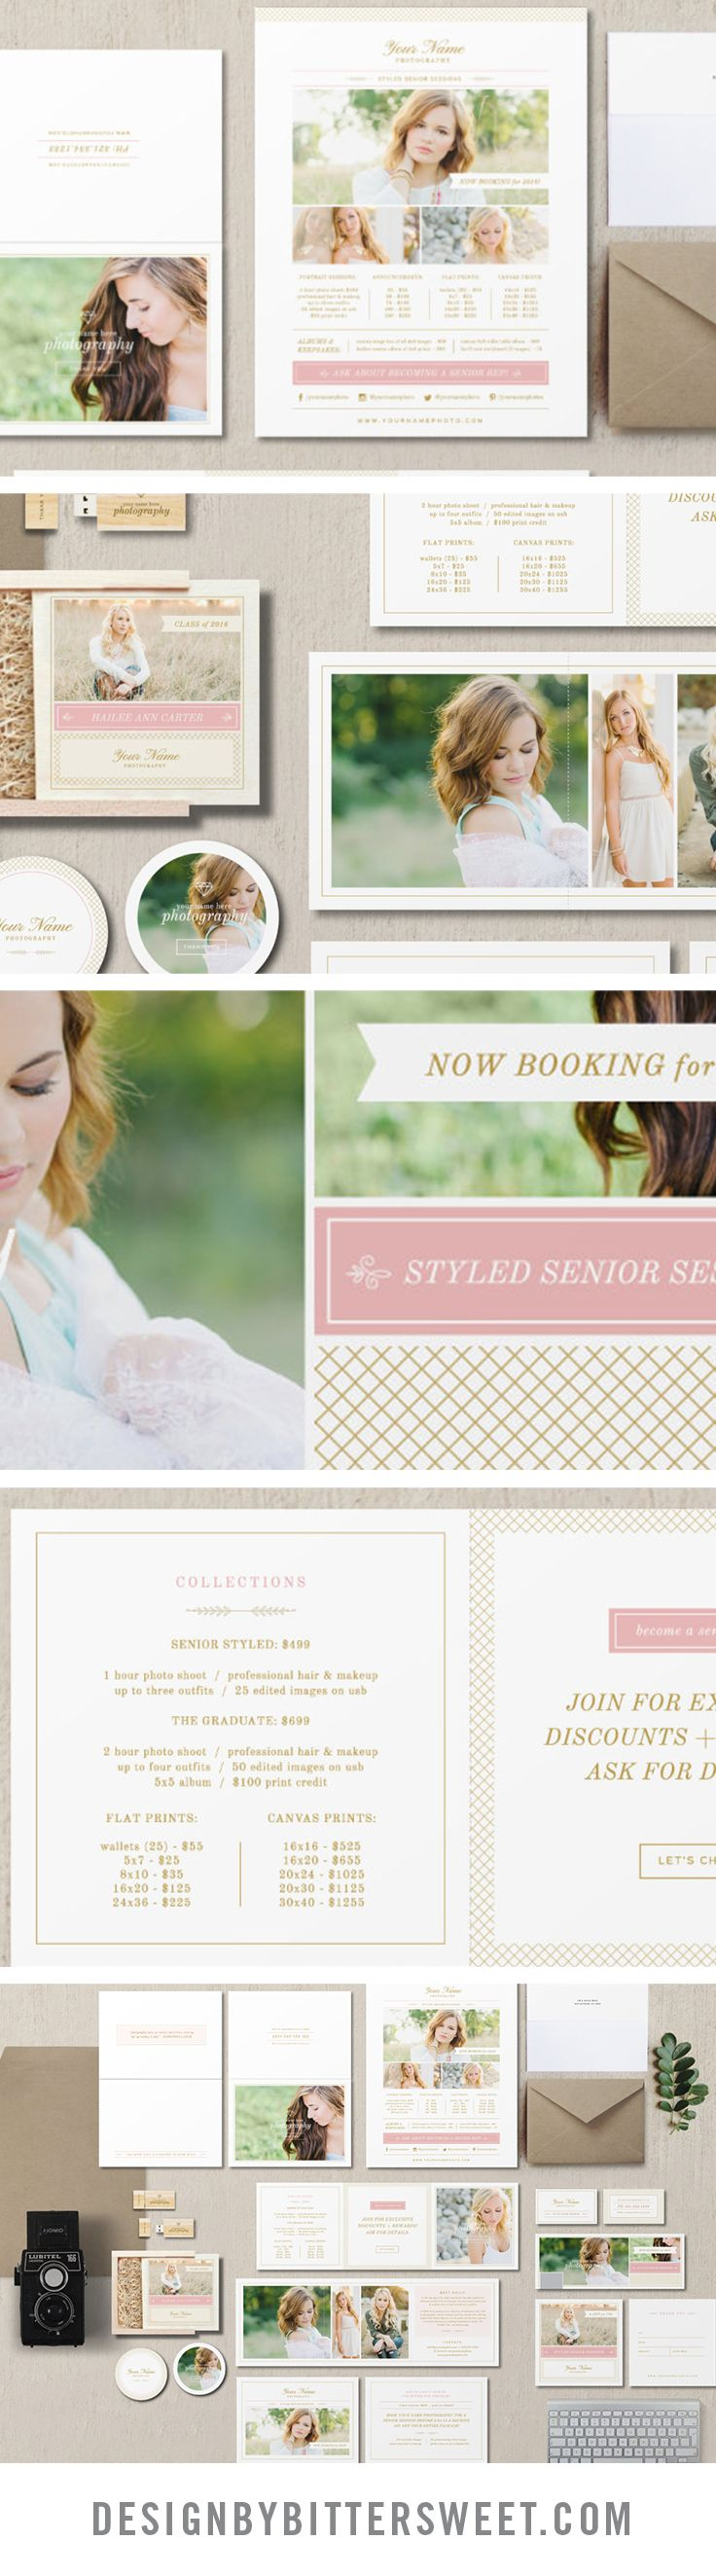 Senior photography marketing templates professional photographer senior photography marketing templates professional photographer branding materials pricing guides graduation announcements magicingreecefo Image collections